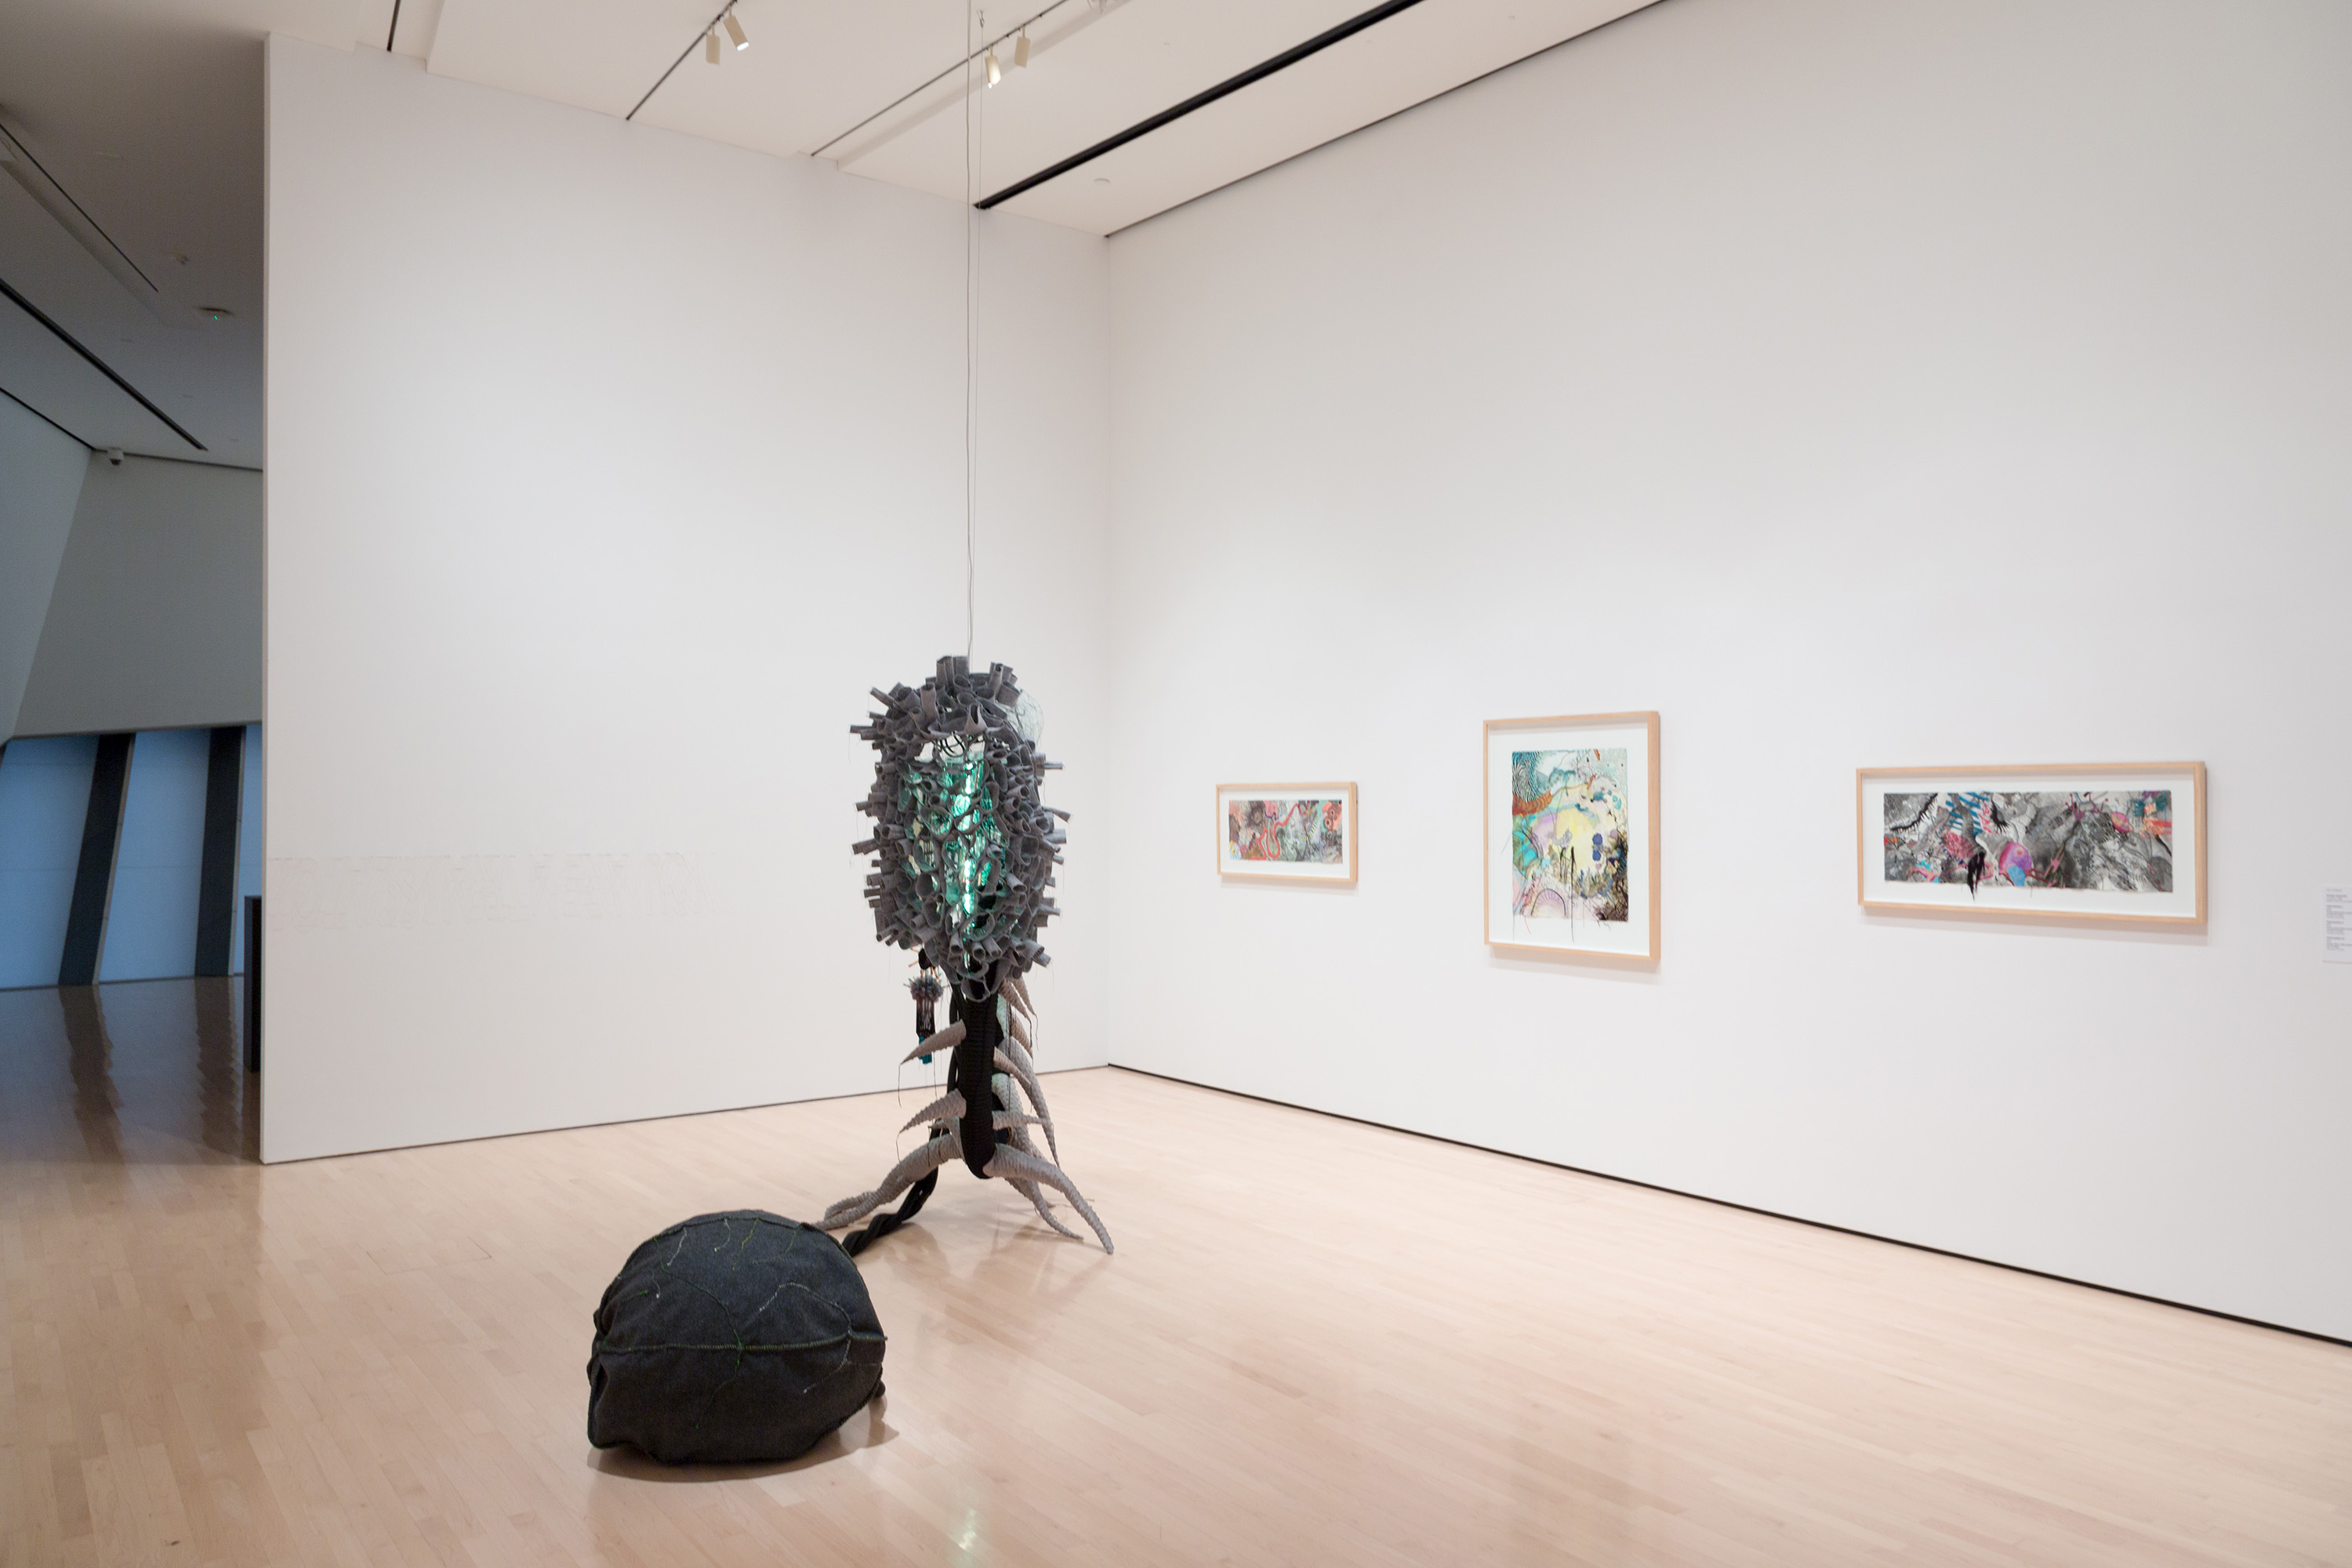 2017 Master of Fine Arts Exhibition, installation view at the Eli and Edythe Broad Art Museum at Michigan State University, 2017. Photo: MSU Broad